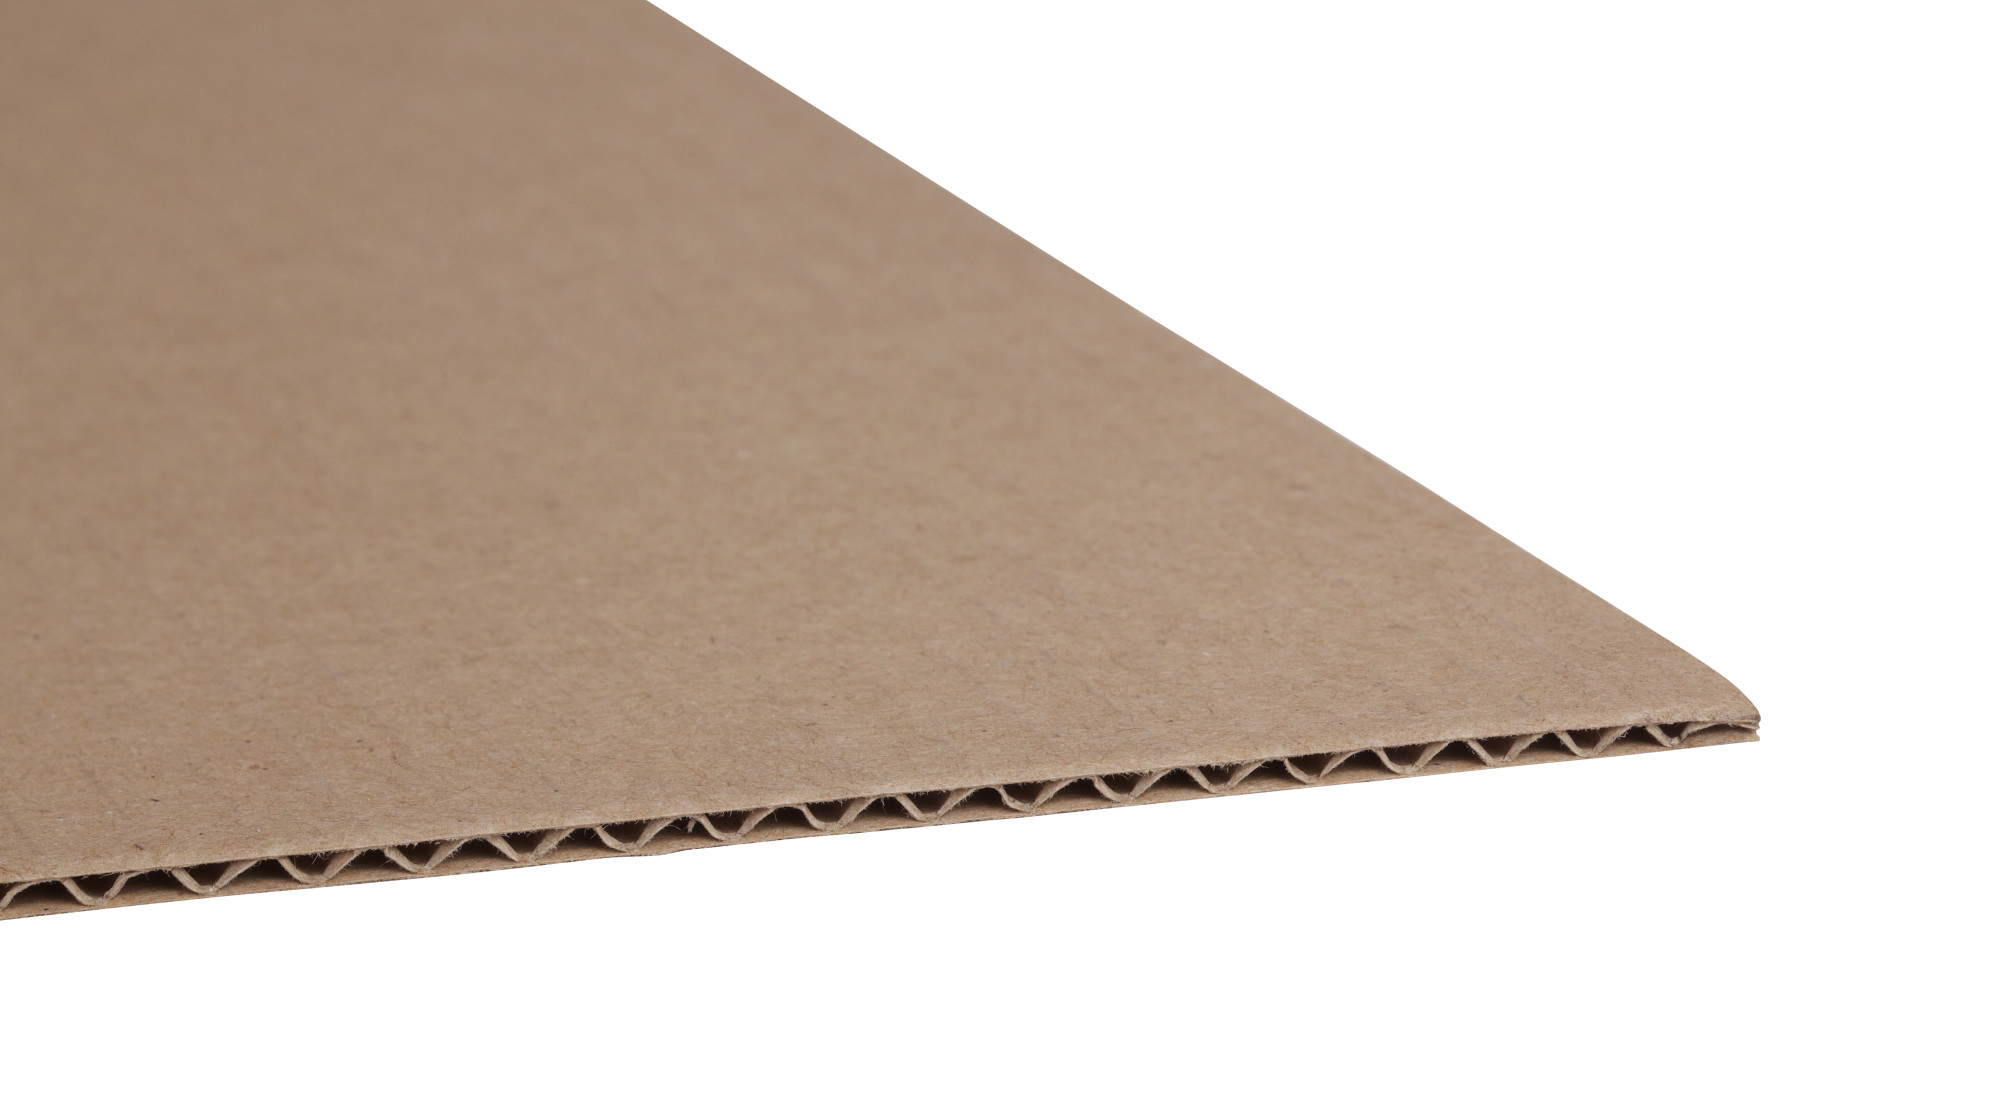 407 x 1737mm Single Wall Sheet